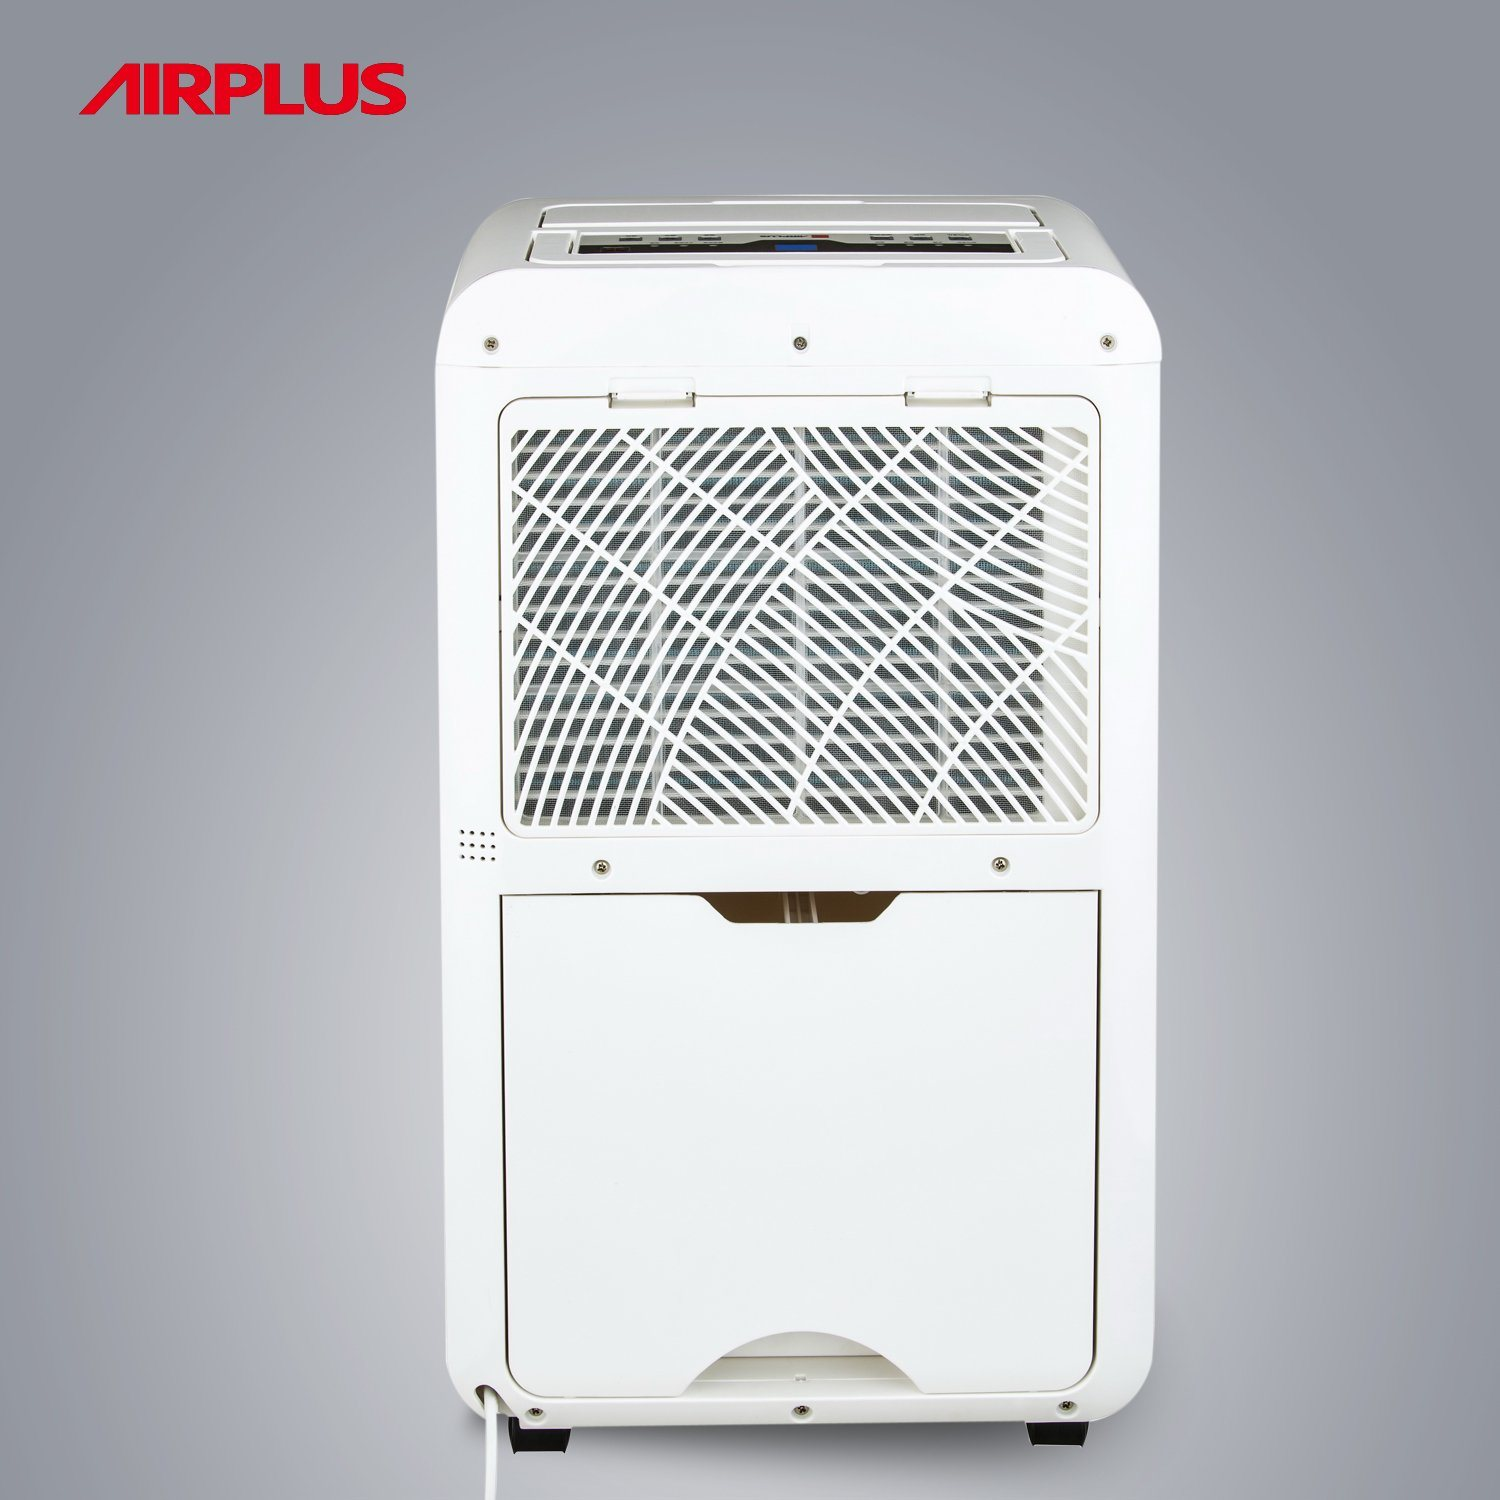 290W Household Dehumidifier with Panasonic Compressor (AP25-202EE)